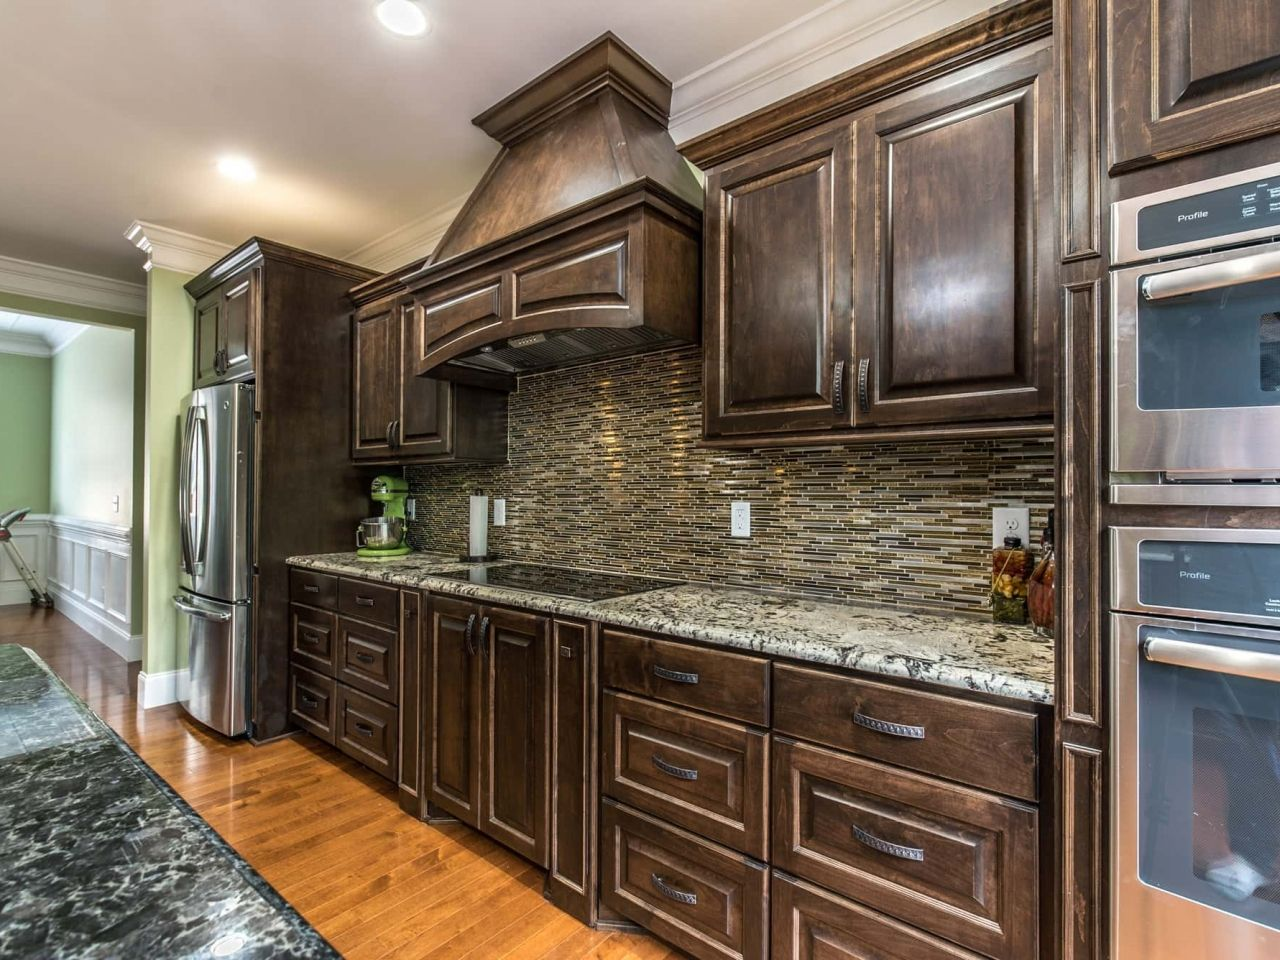 Granite Kitchen Countertops Delicatus White Charleston Sc East Coast Granite And Design  (6)